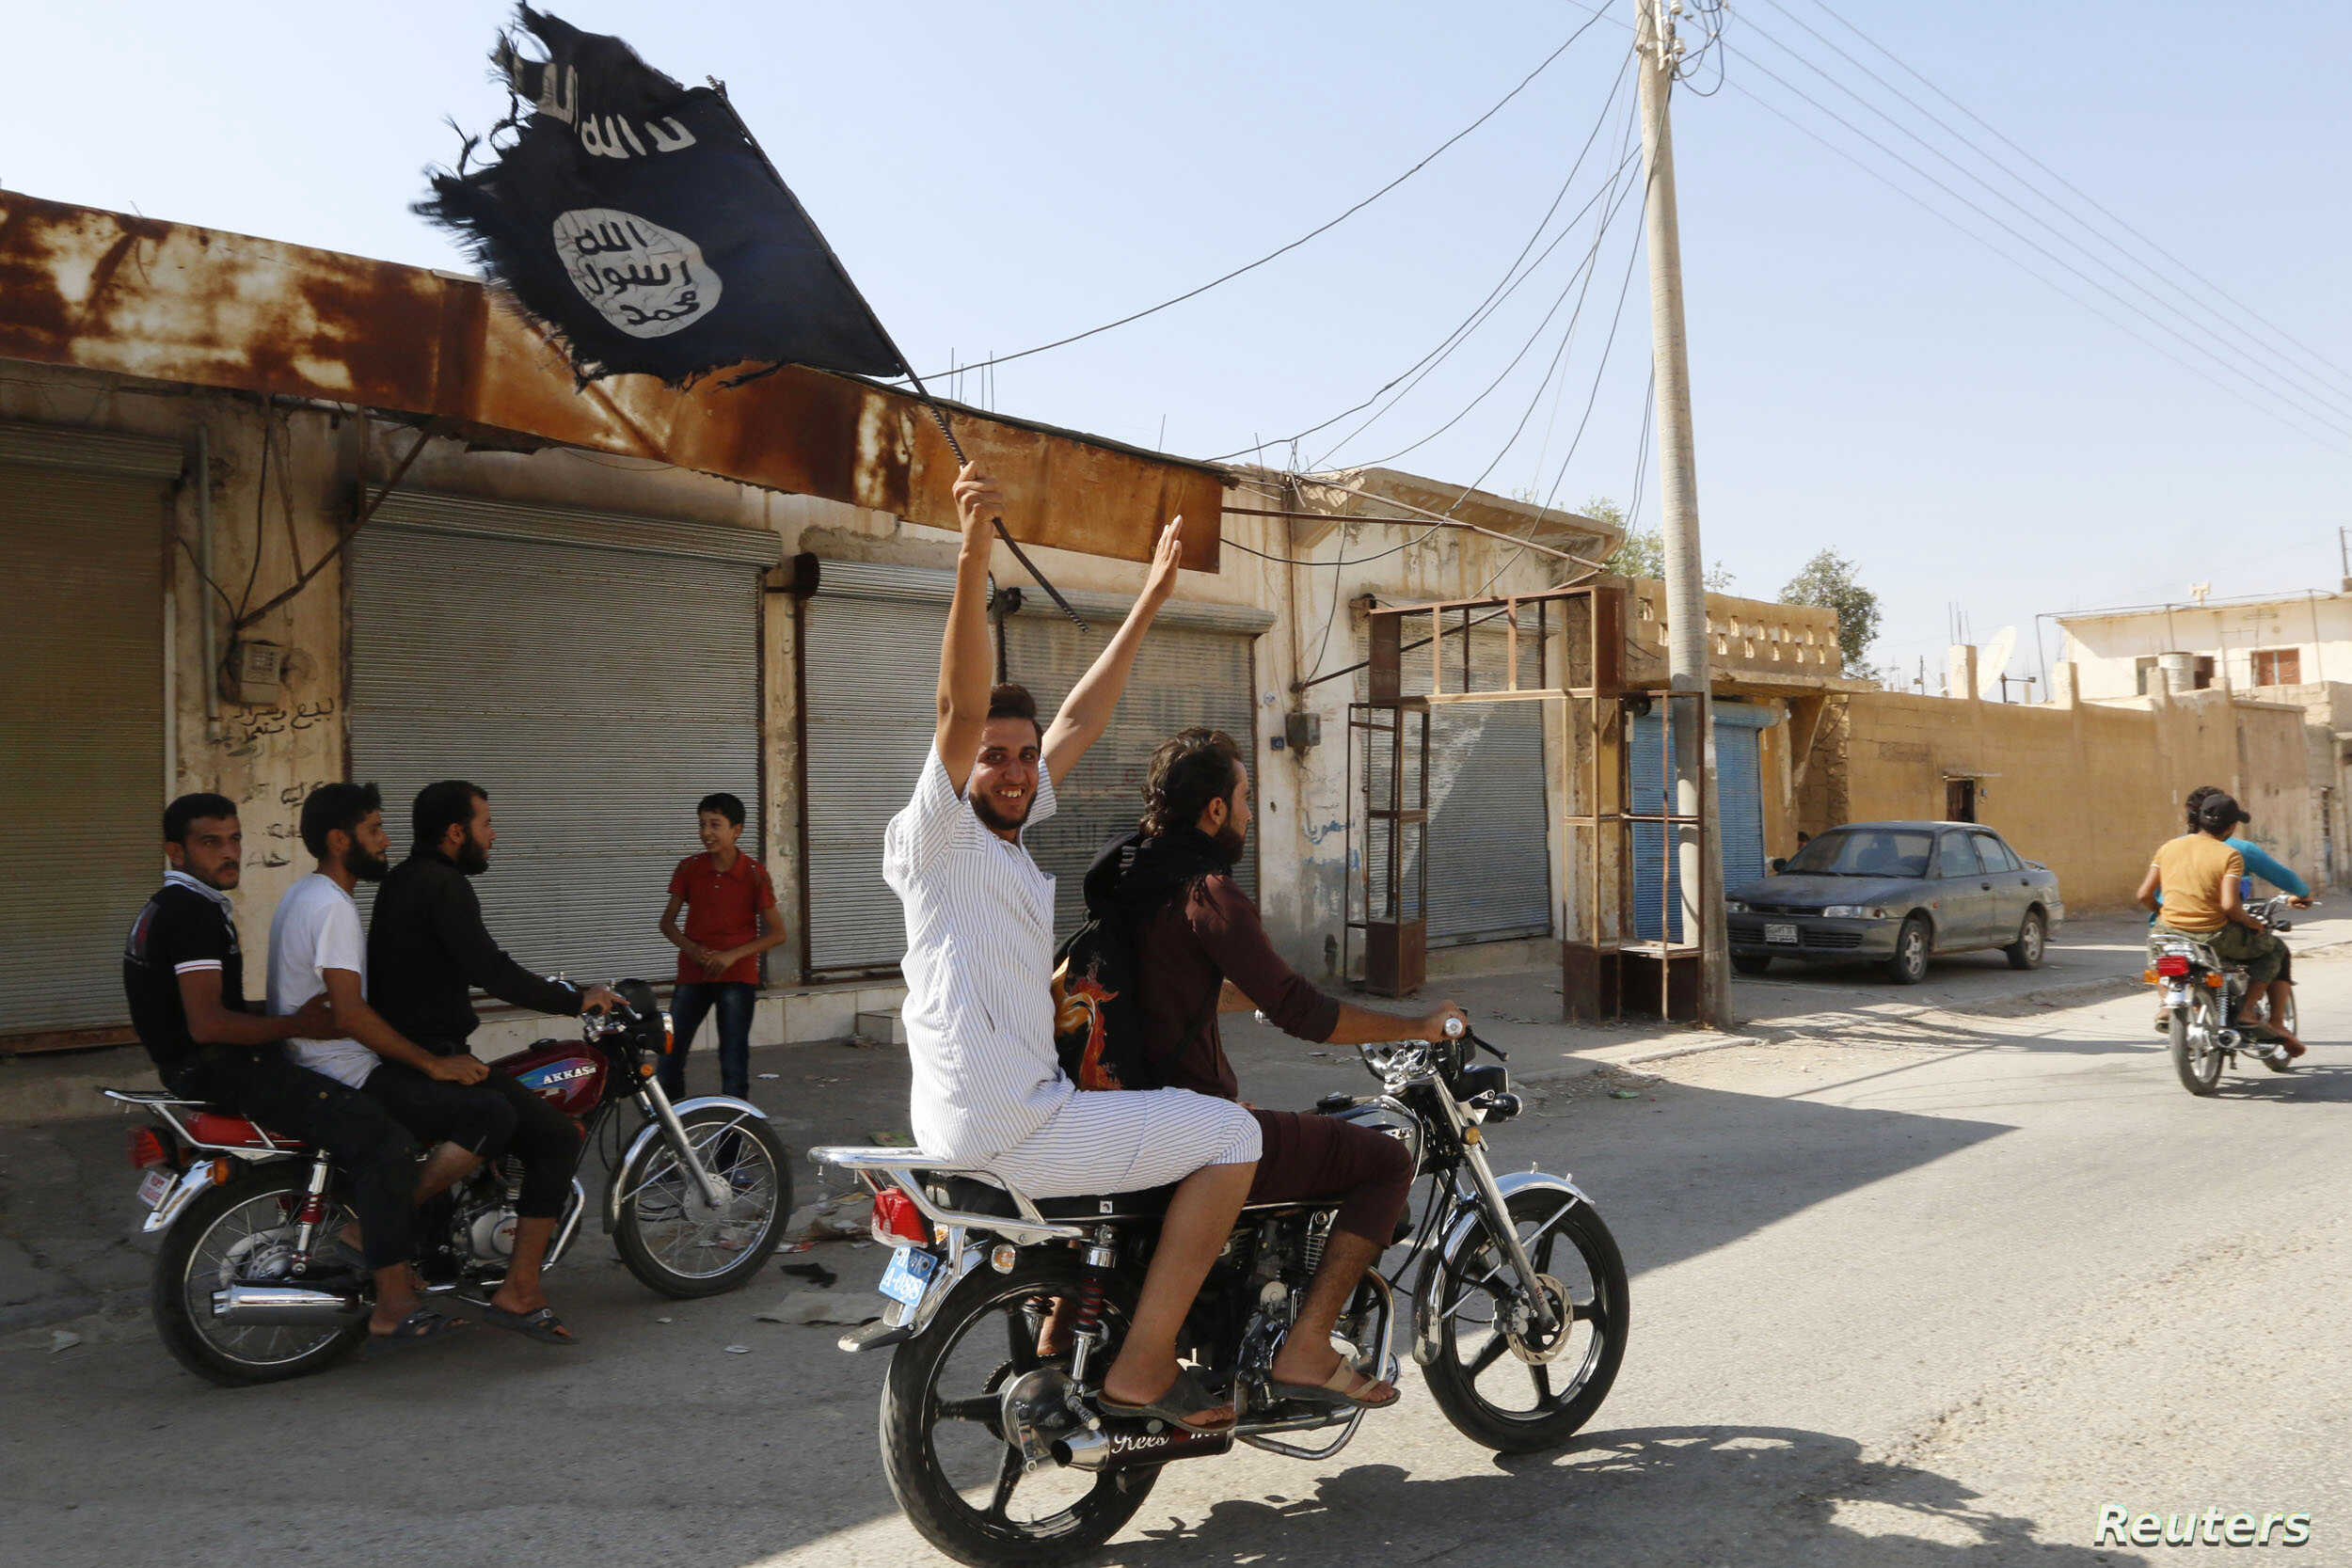 A resident of Tabqa city touring the streets on a motorcycle waves an Islamist flag in celebration after Islamic State militants took over Tabqa air base, in nearby Raqqa, Syria, Aug. 24, 2014.